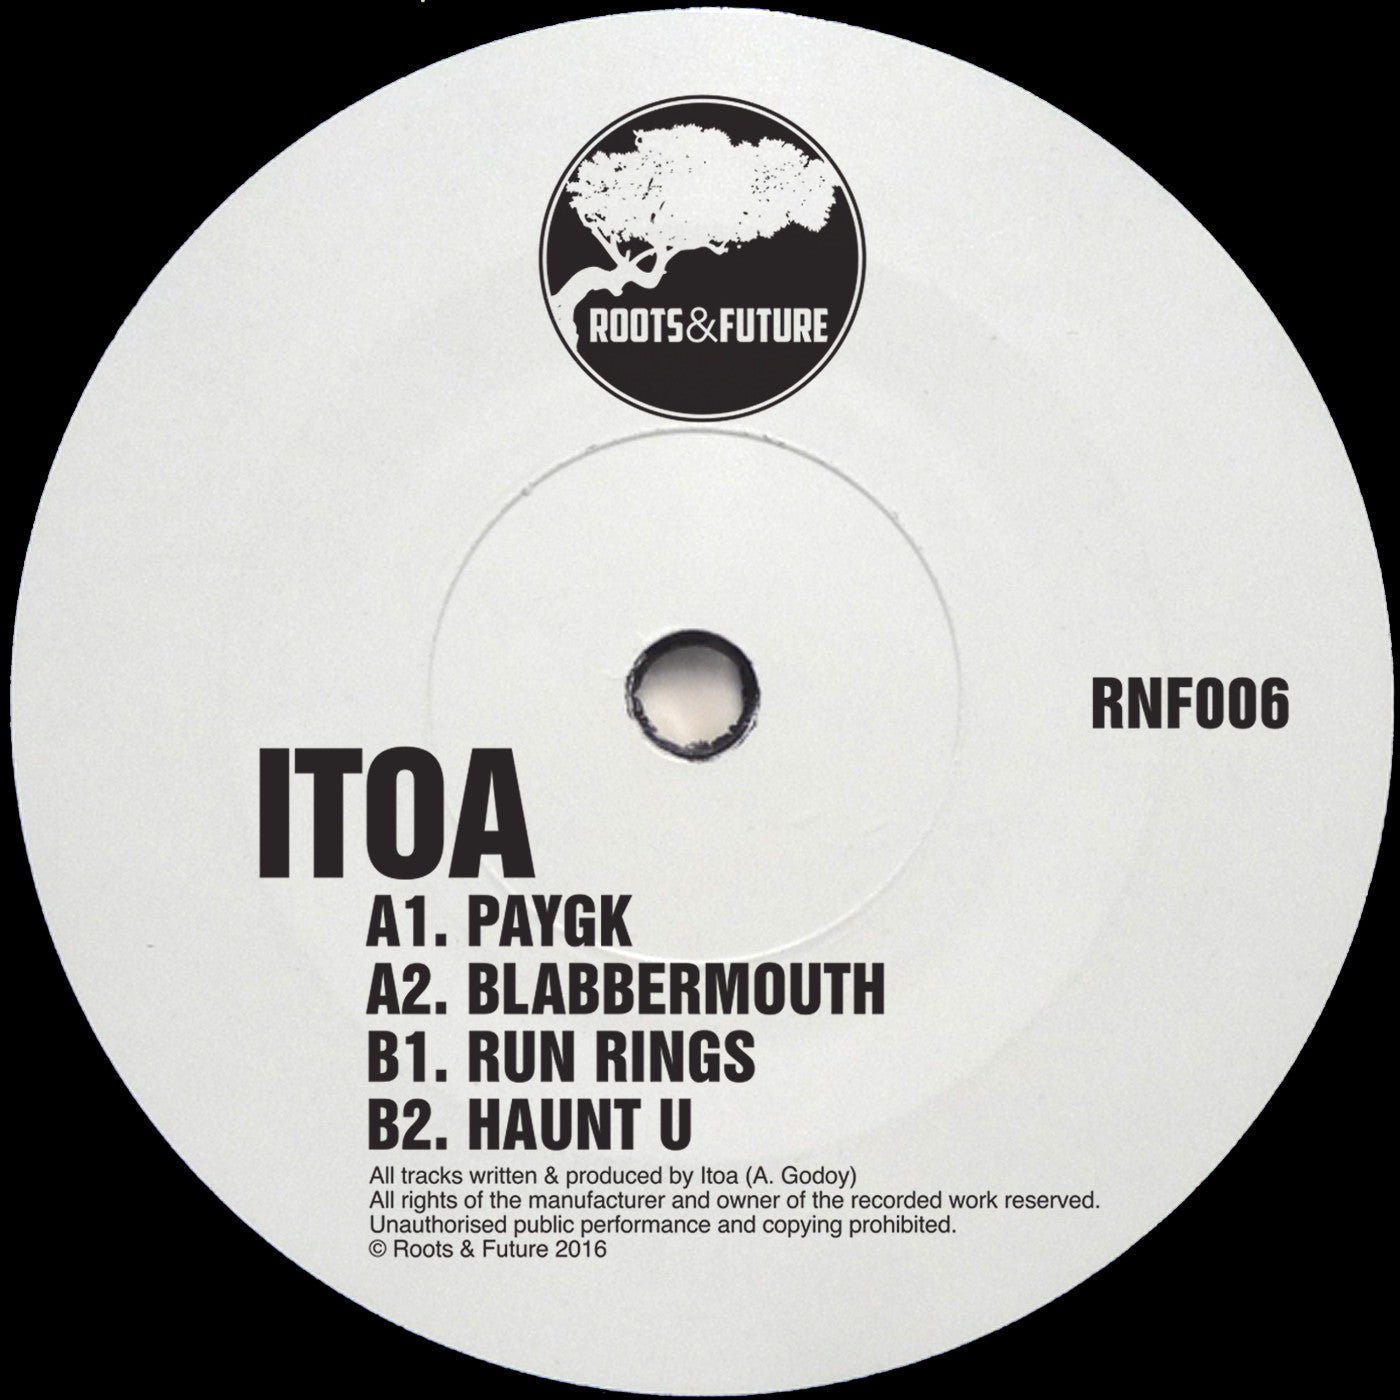 Itoa - RNF006 , Vinyl - Roots & Future, Unearthed Sounds